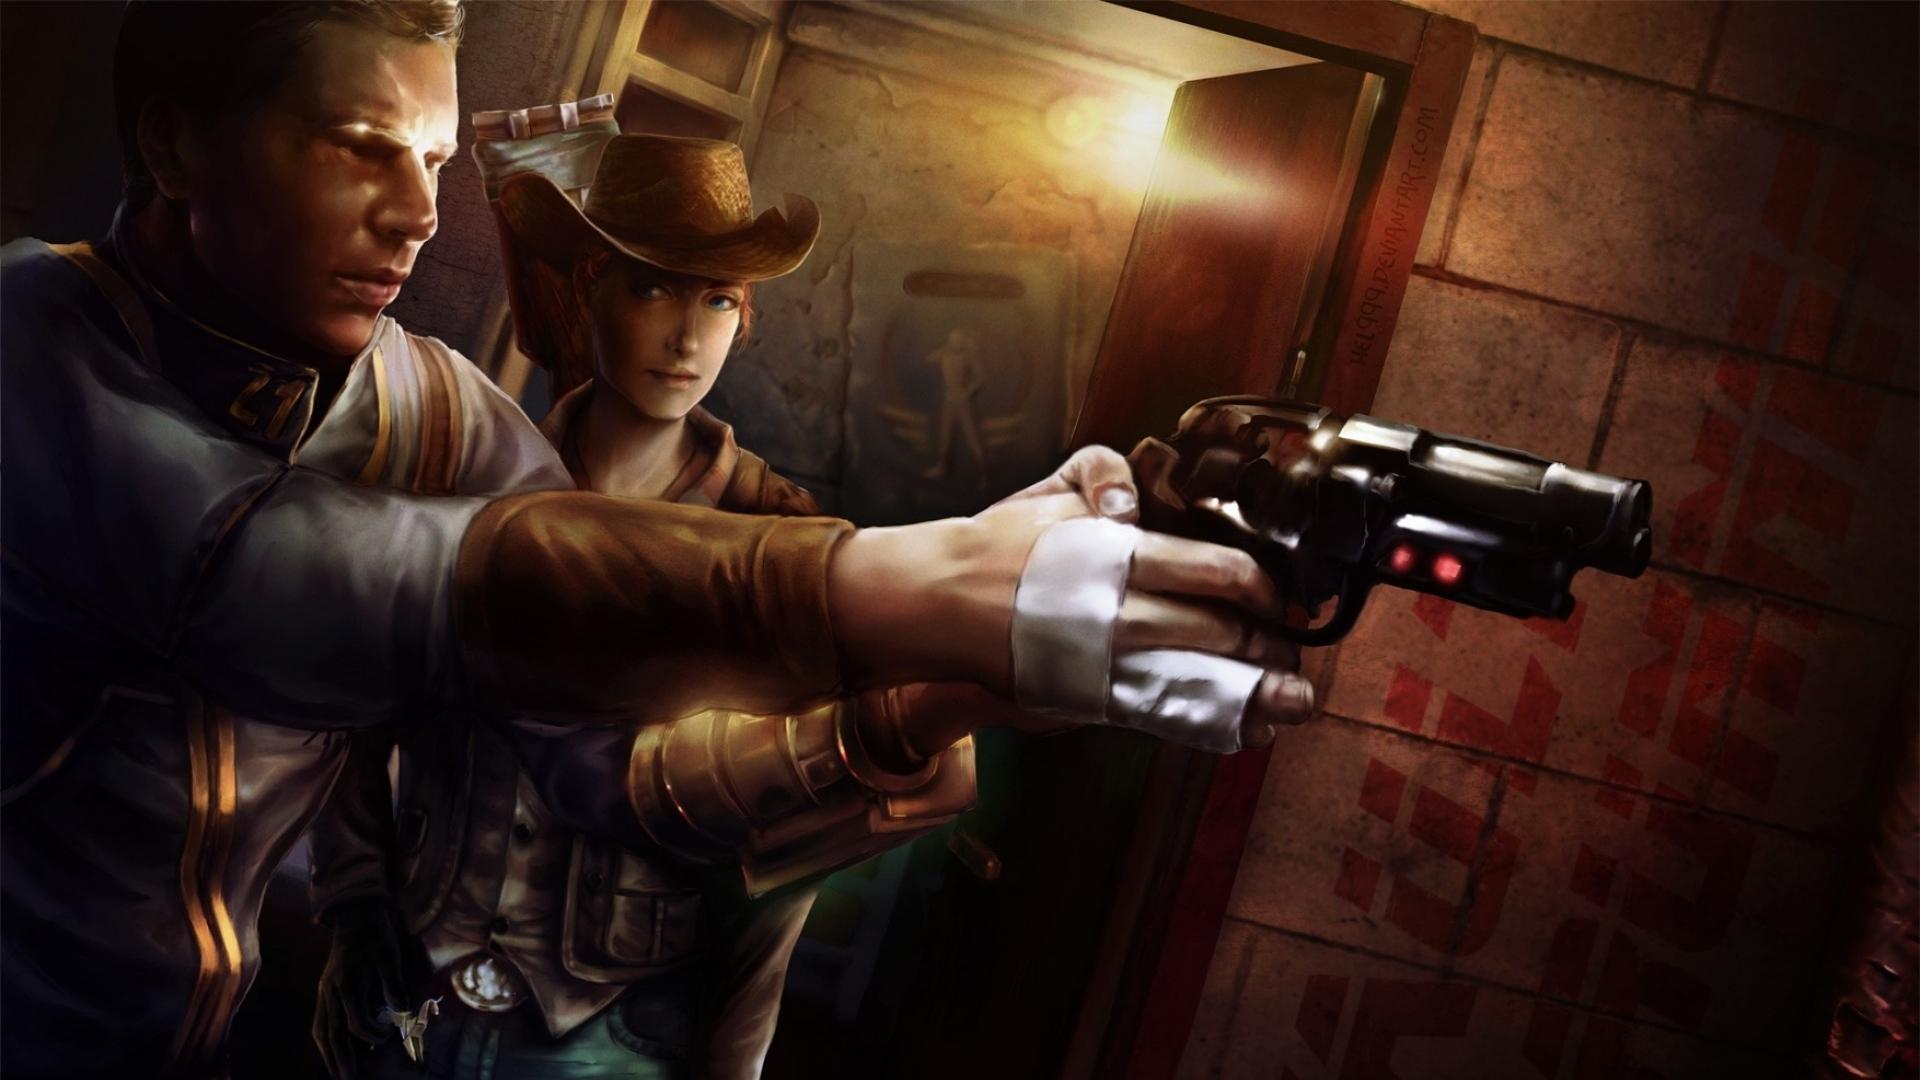 Fallout New Vegas Hd Wallpaper Posted By Michelle Johnson